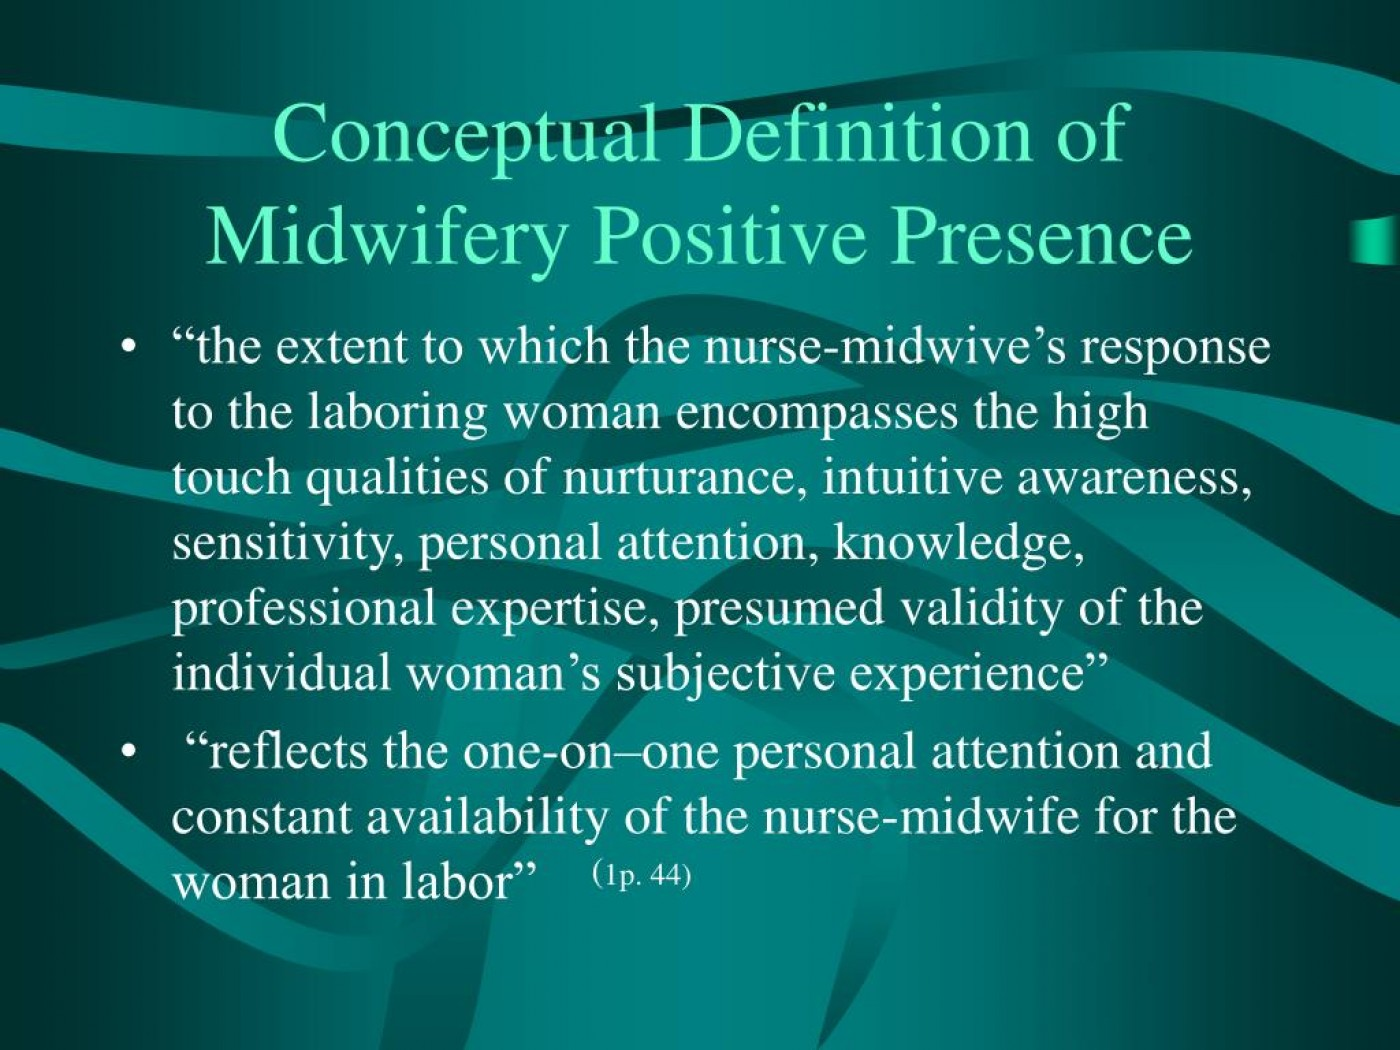 021 Essay Example Personal Definition Conceptual Of Midwifery Positive Presence Archaicawful Experience Narrative Meaning 1400